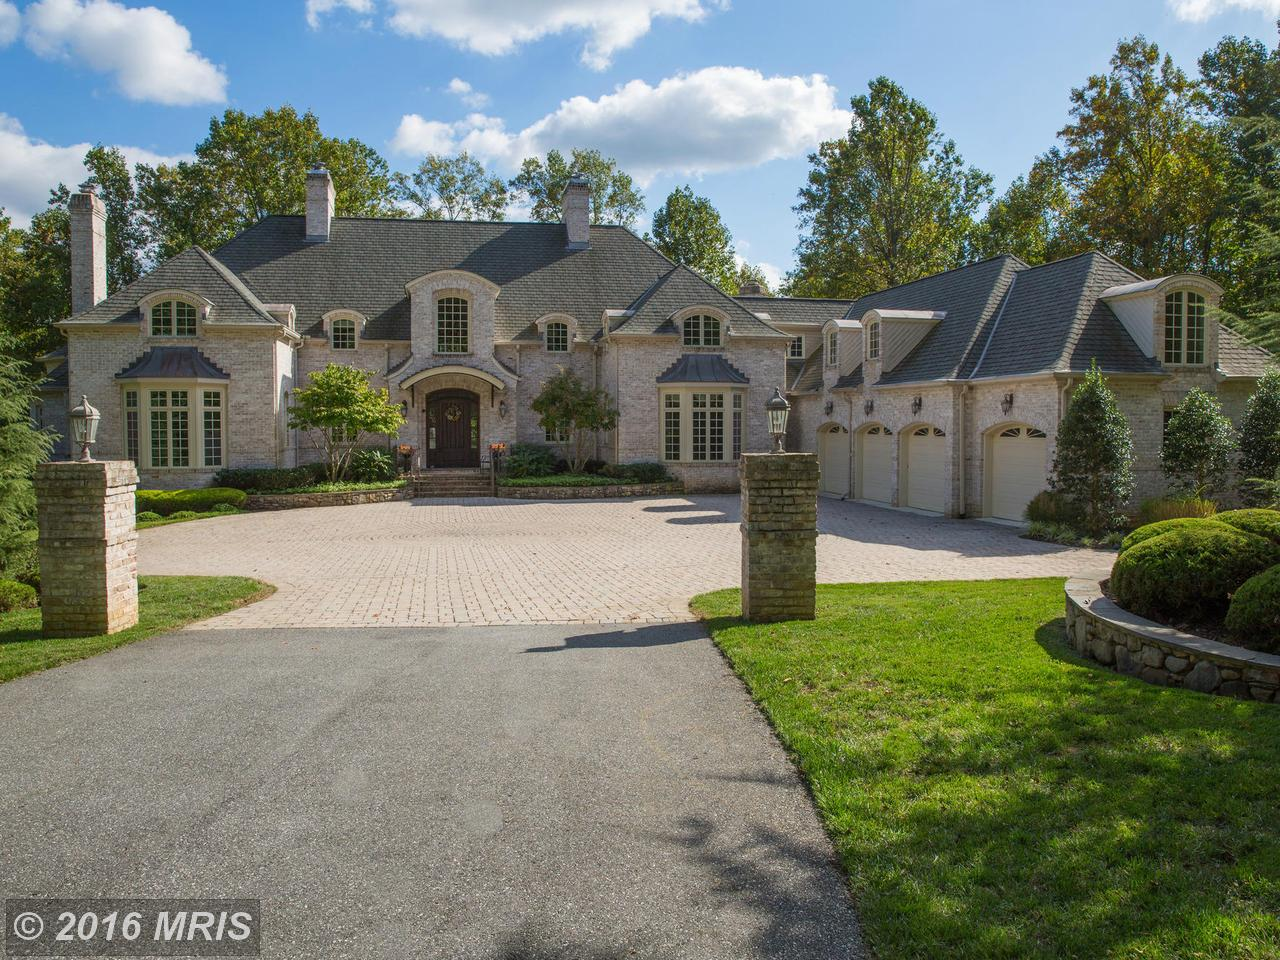 Luxury Homes For Sale In Ellicott City Md